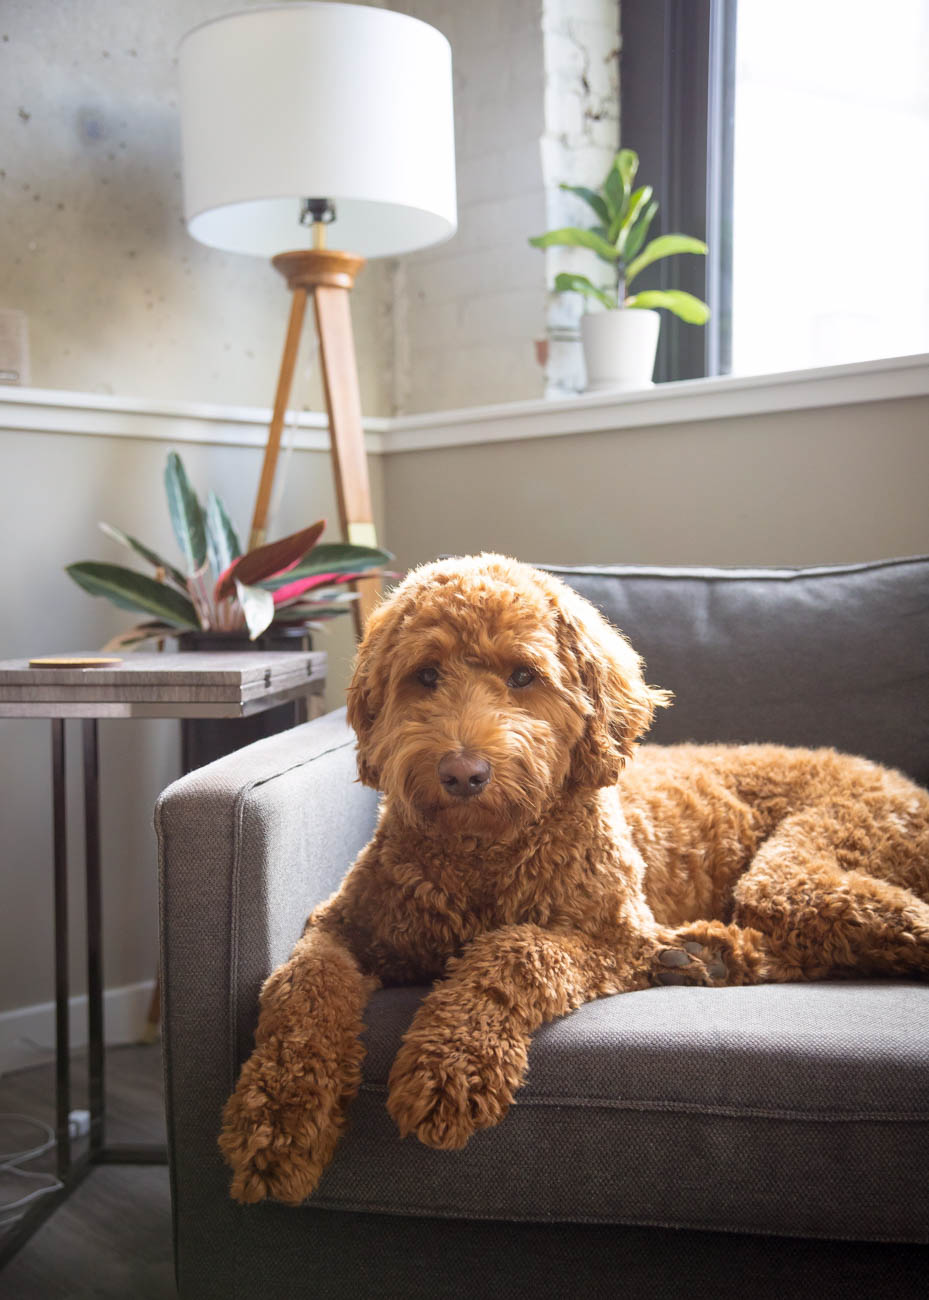 Meet Myrtle—an Australian Labradoodle whose life revolves around playing fetch, stealing socks,{ }and comfortable city-livin'. / Image courtesy of Instagram user @cincymyrtle // Published: 11.28.18